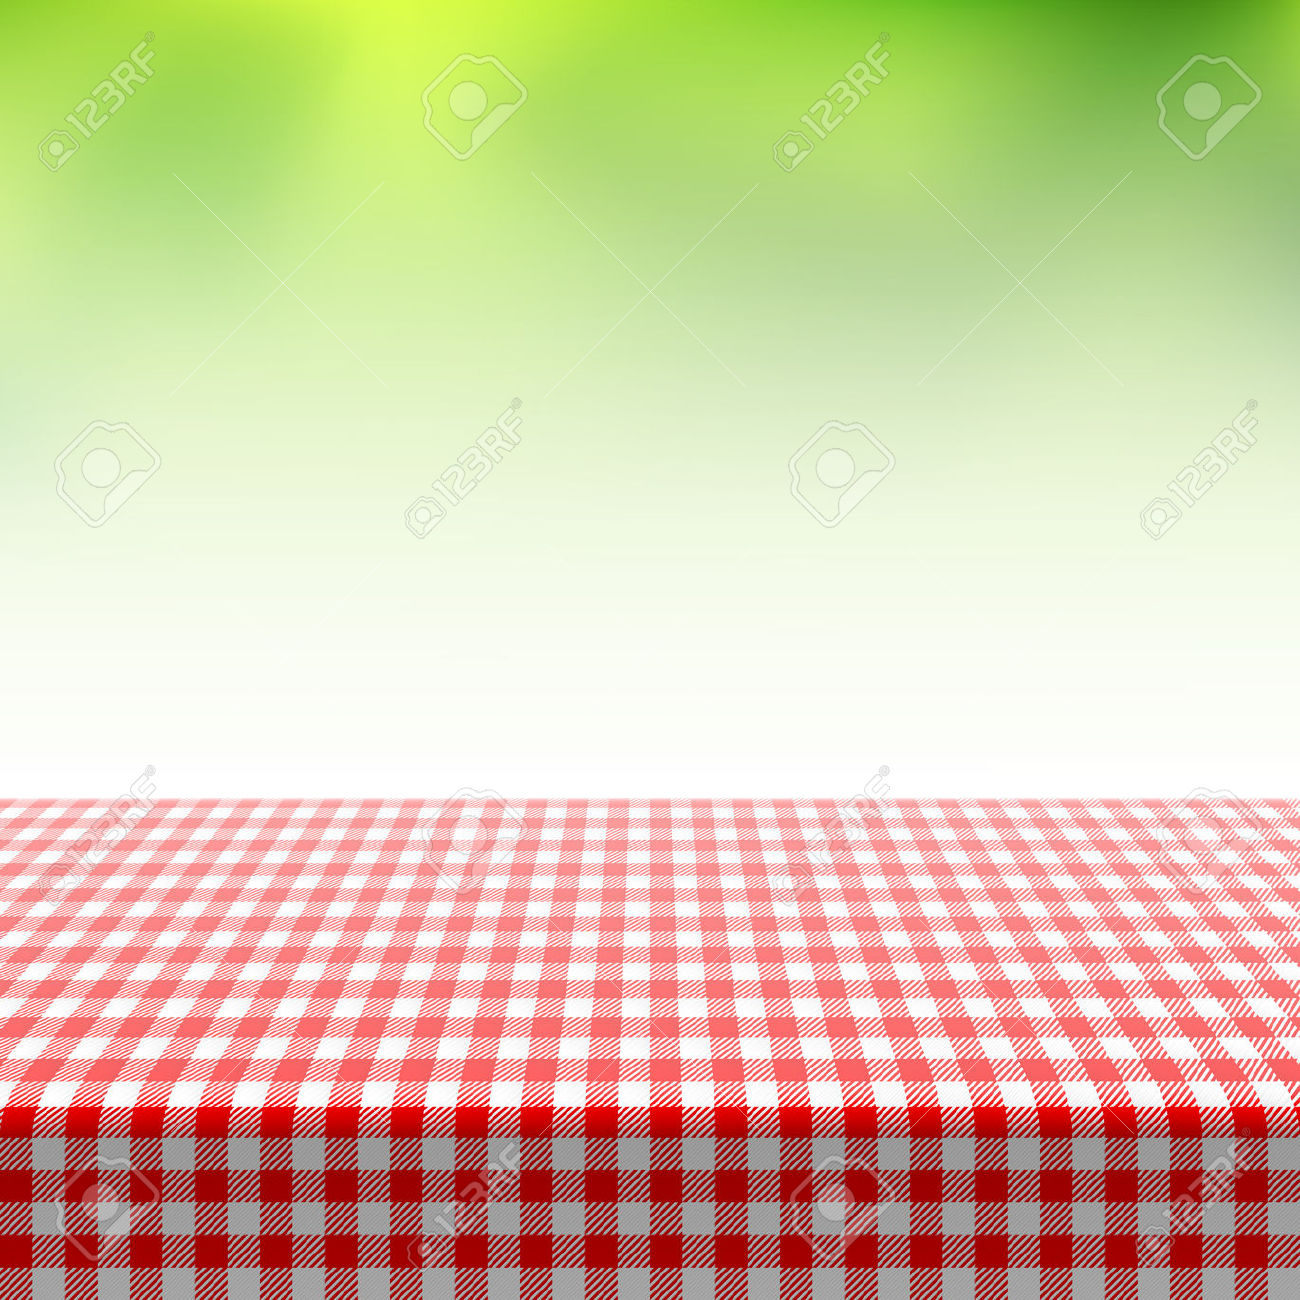 Tablecloth clipart free graphic black and white library Free Pink Tablecloth Cliparts, Download Free Clip Art, Free ... graphic black and white library